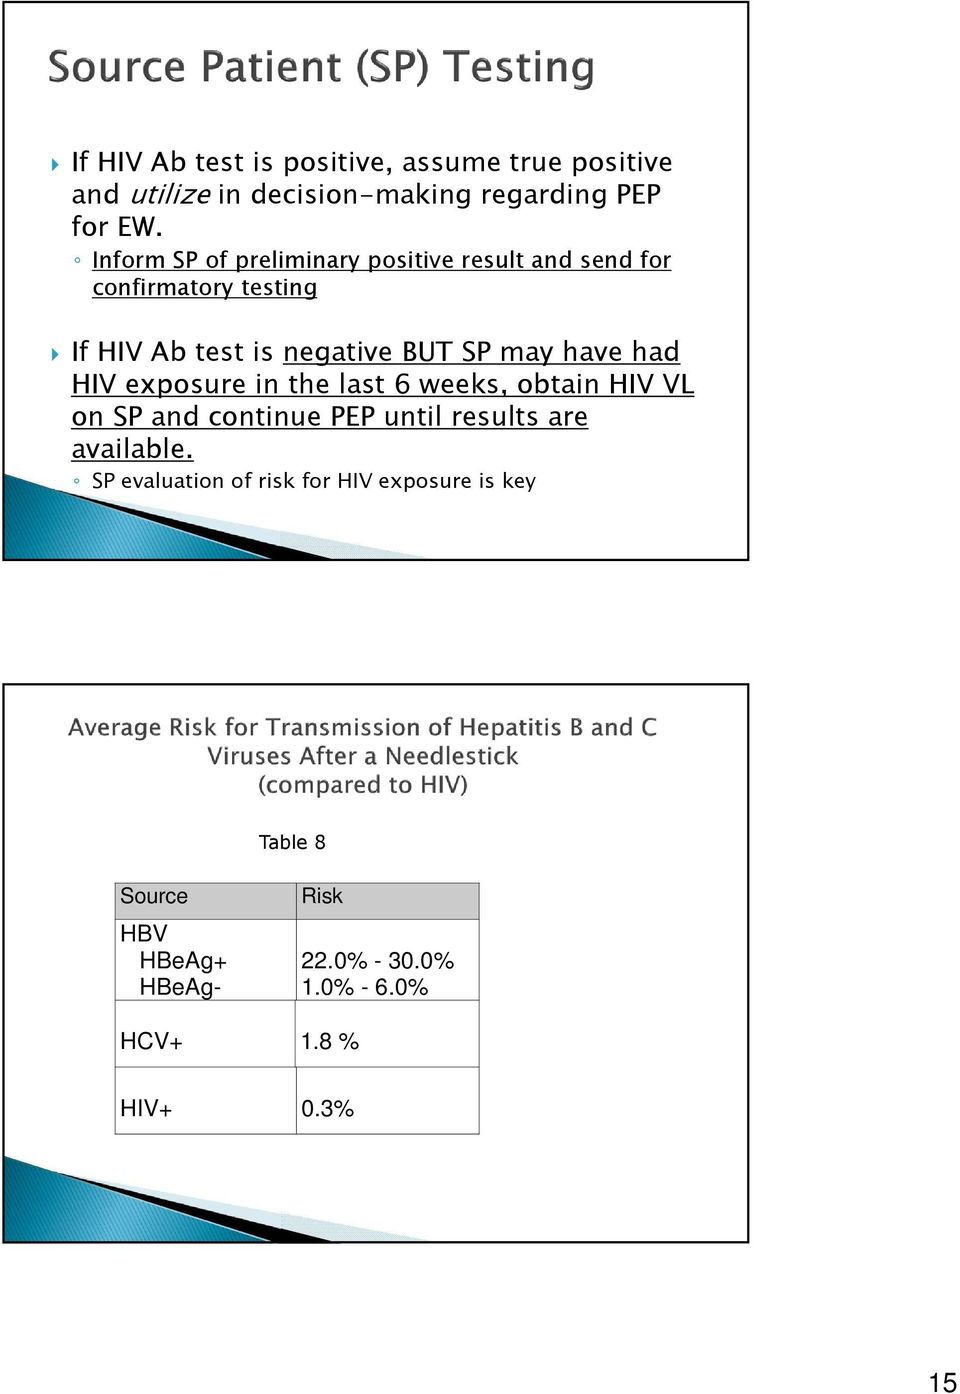 have had HIV exposure in the last 6 weeks, obtain HIV VL on SP and continue PEP until results are available.